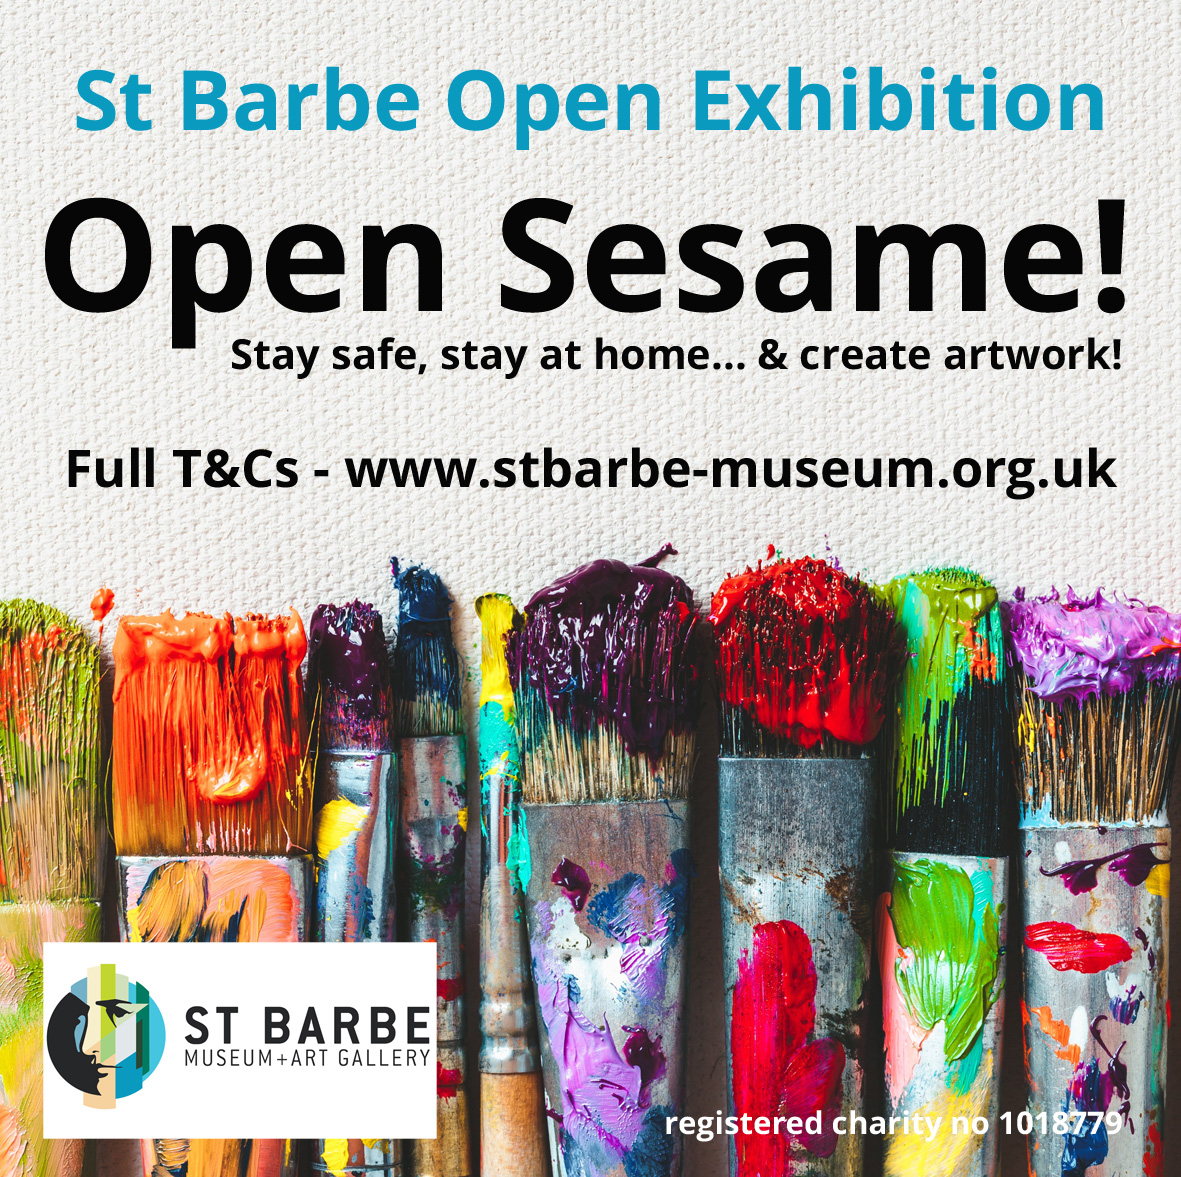 St Barbe Museum and Art Gallery - Open Sesame!